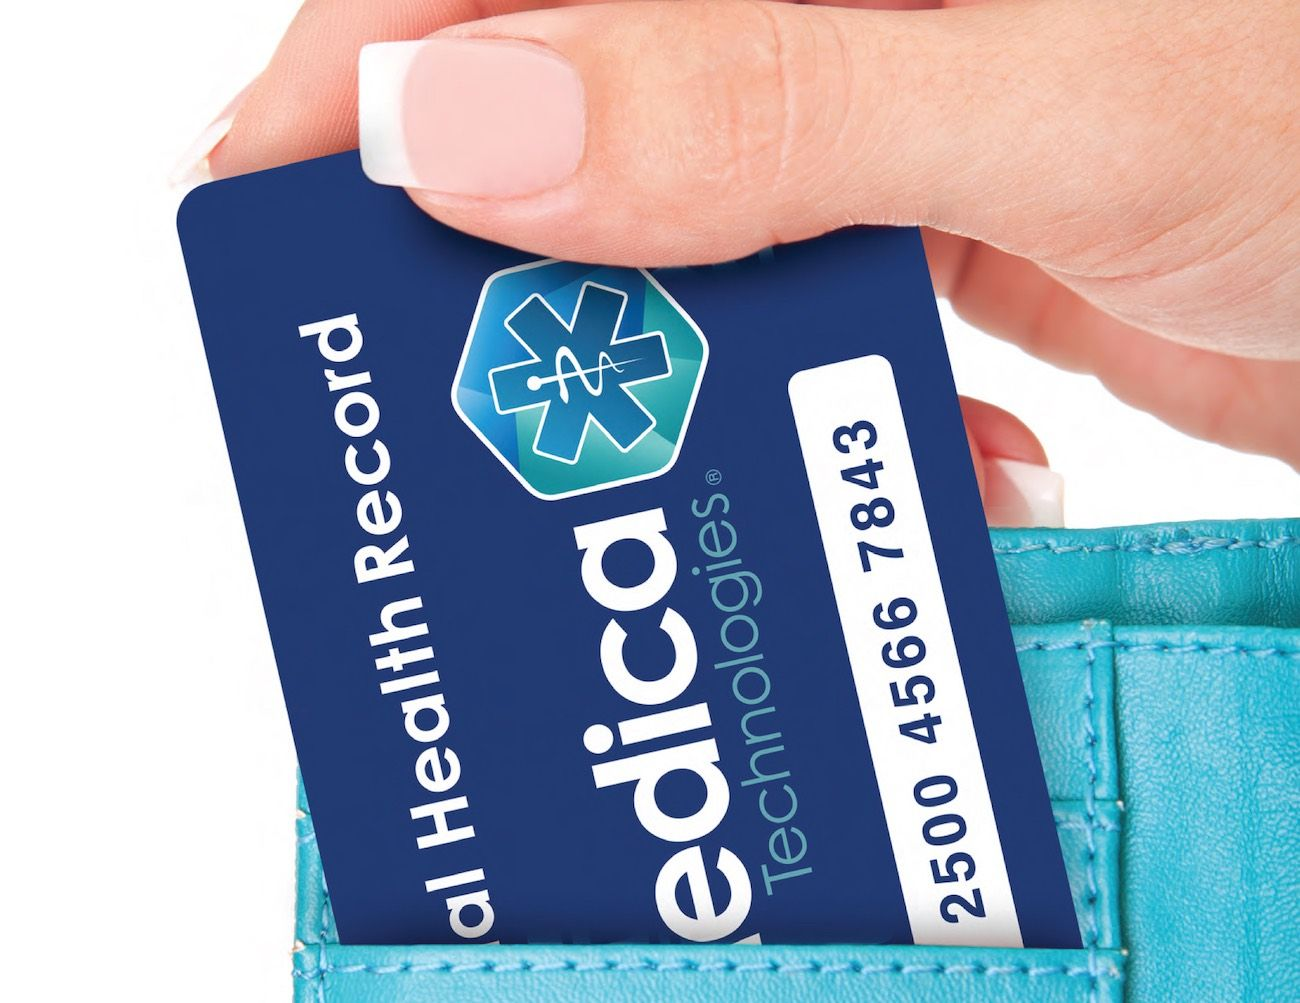 Keeping #health information in one small compact card you can carry on the go is actually a very good idea!